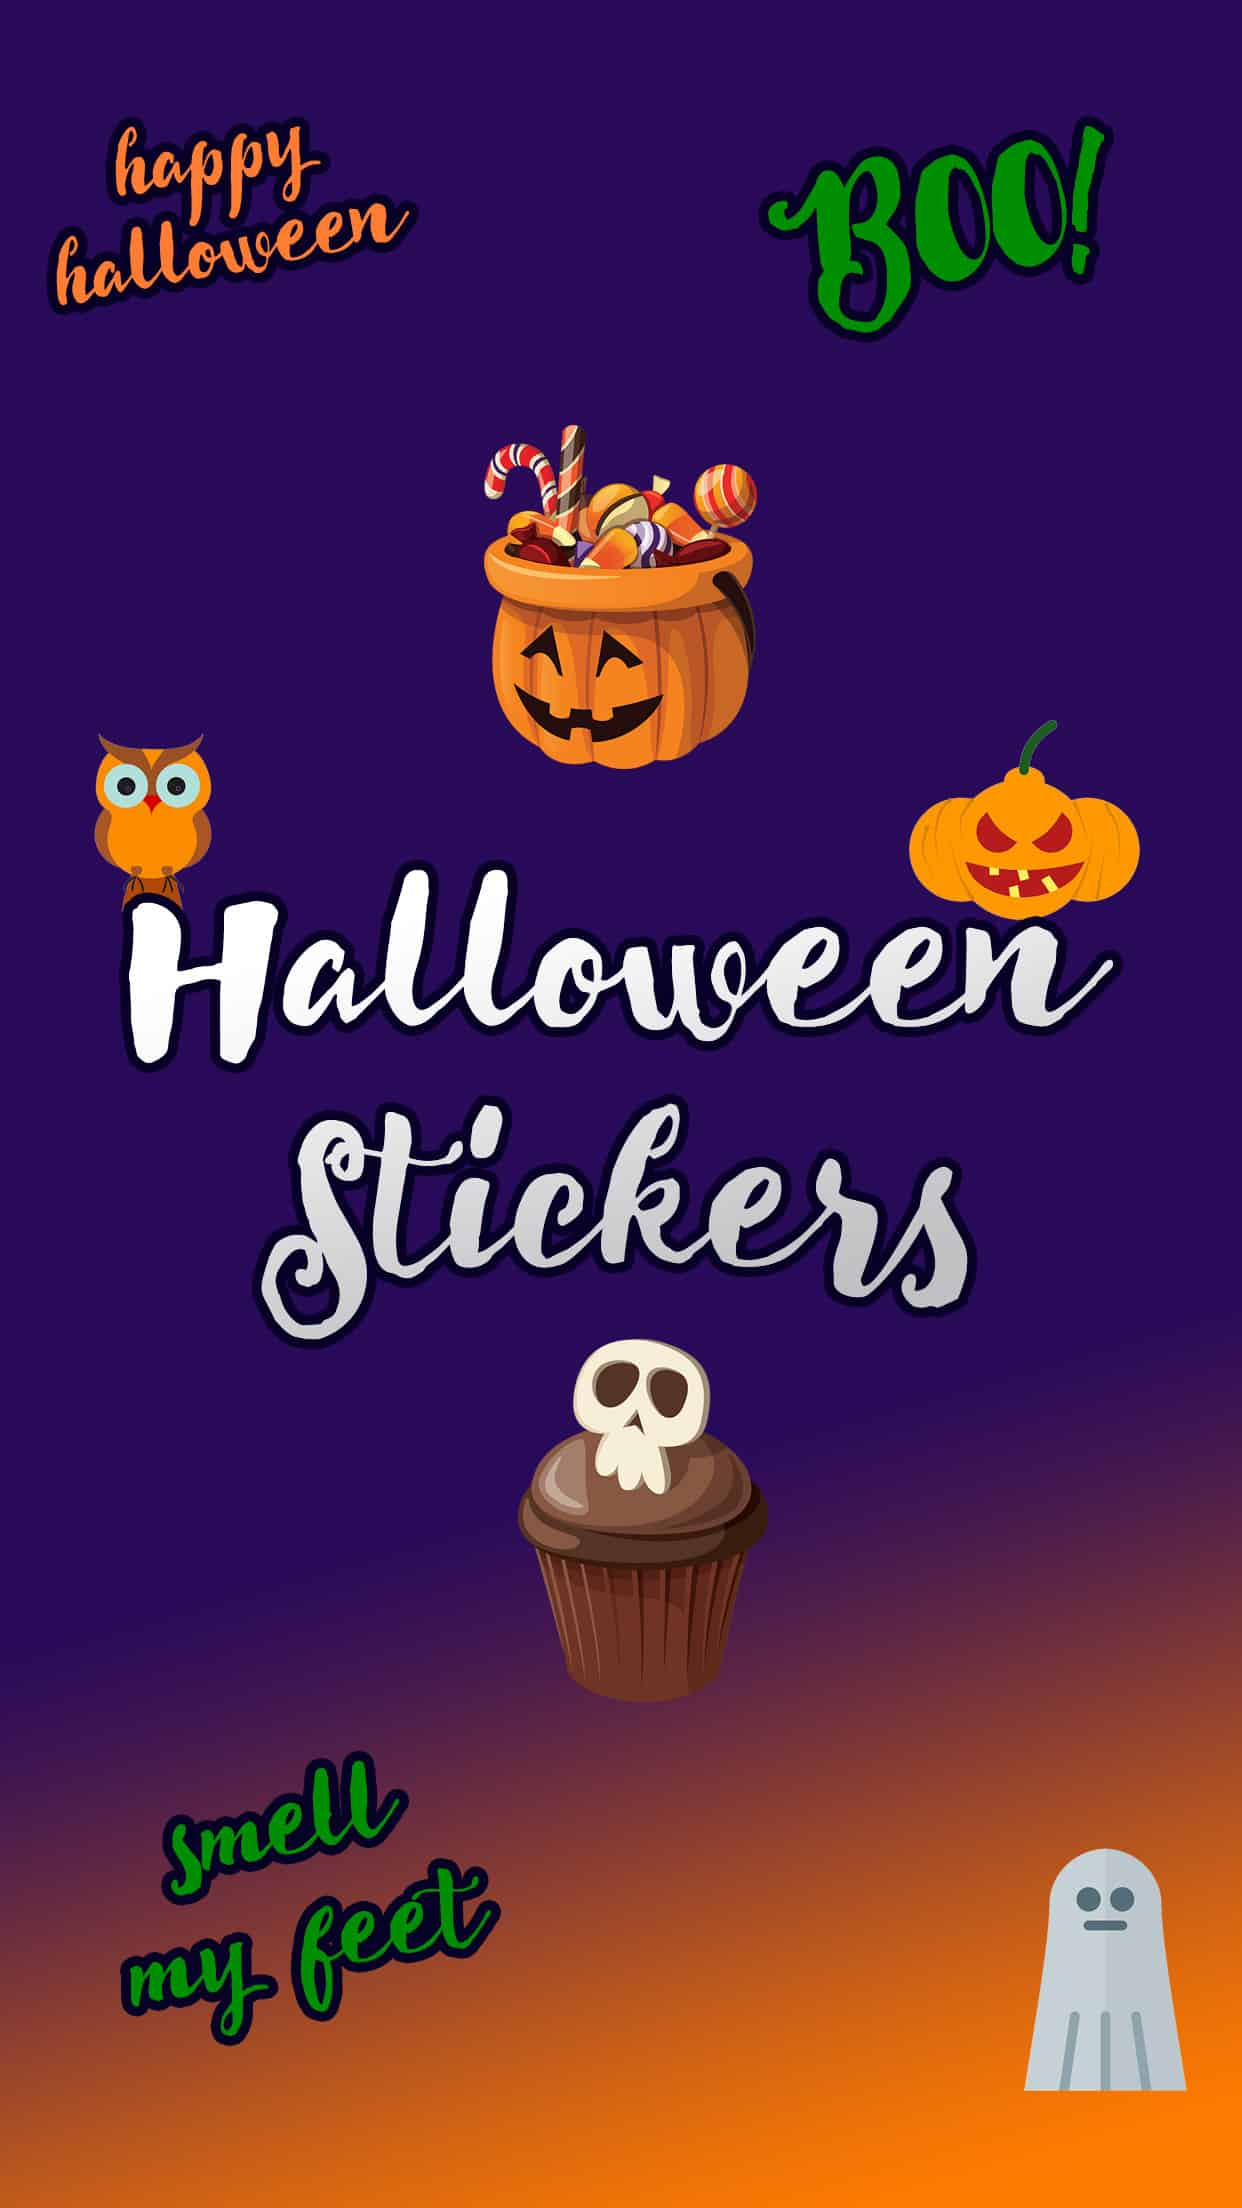 Cute Halloween Stickers Splash